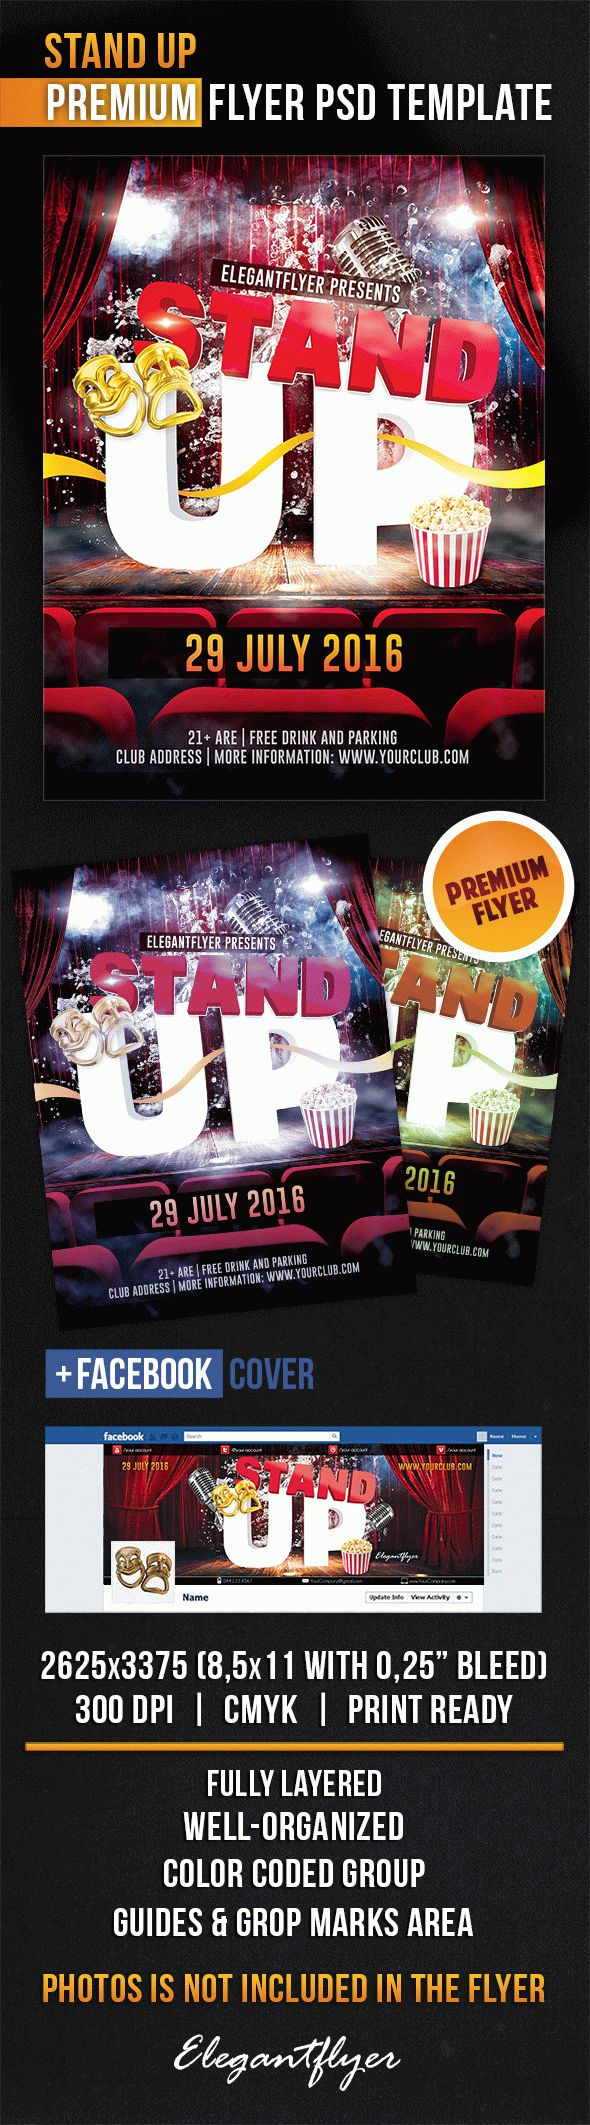 Stand Up – Flyer PSD Template + Facebook Cover